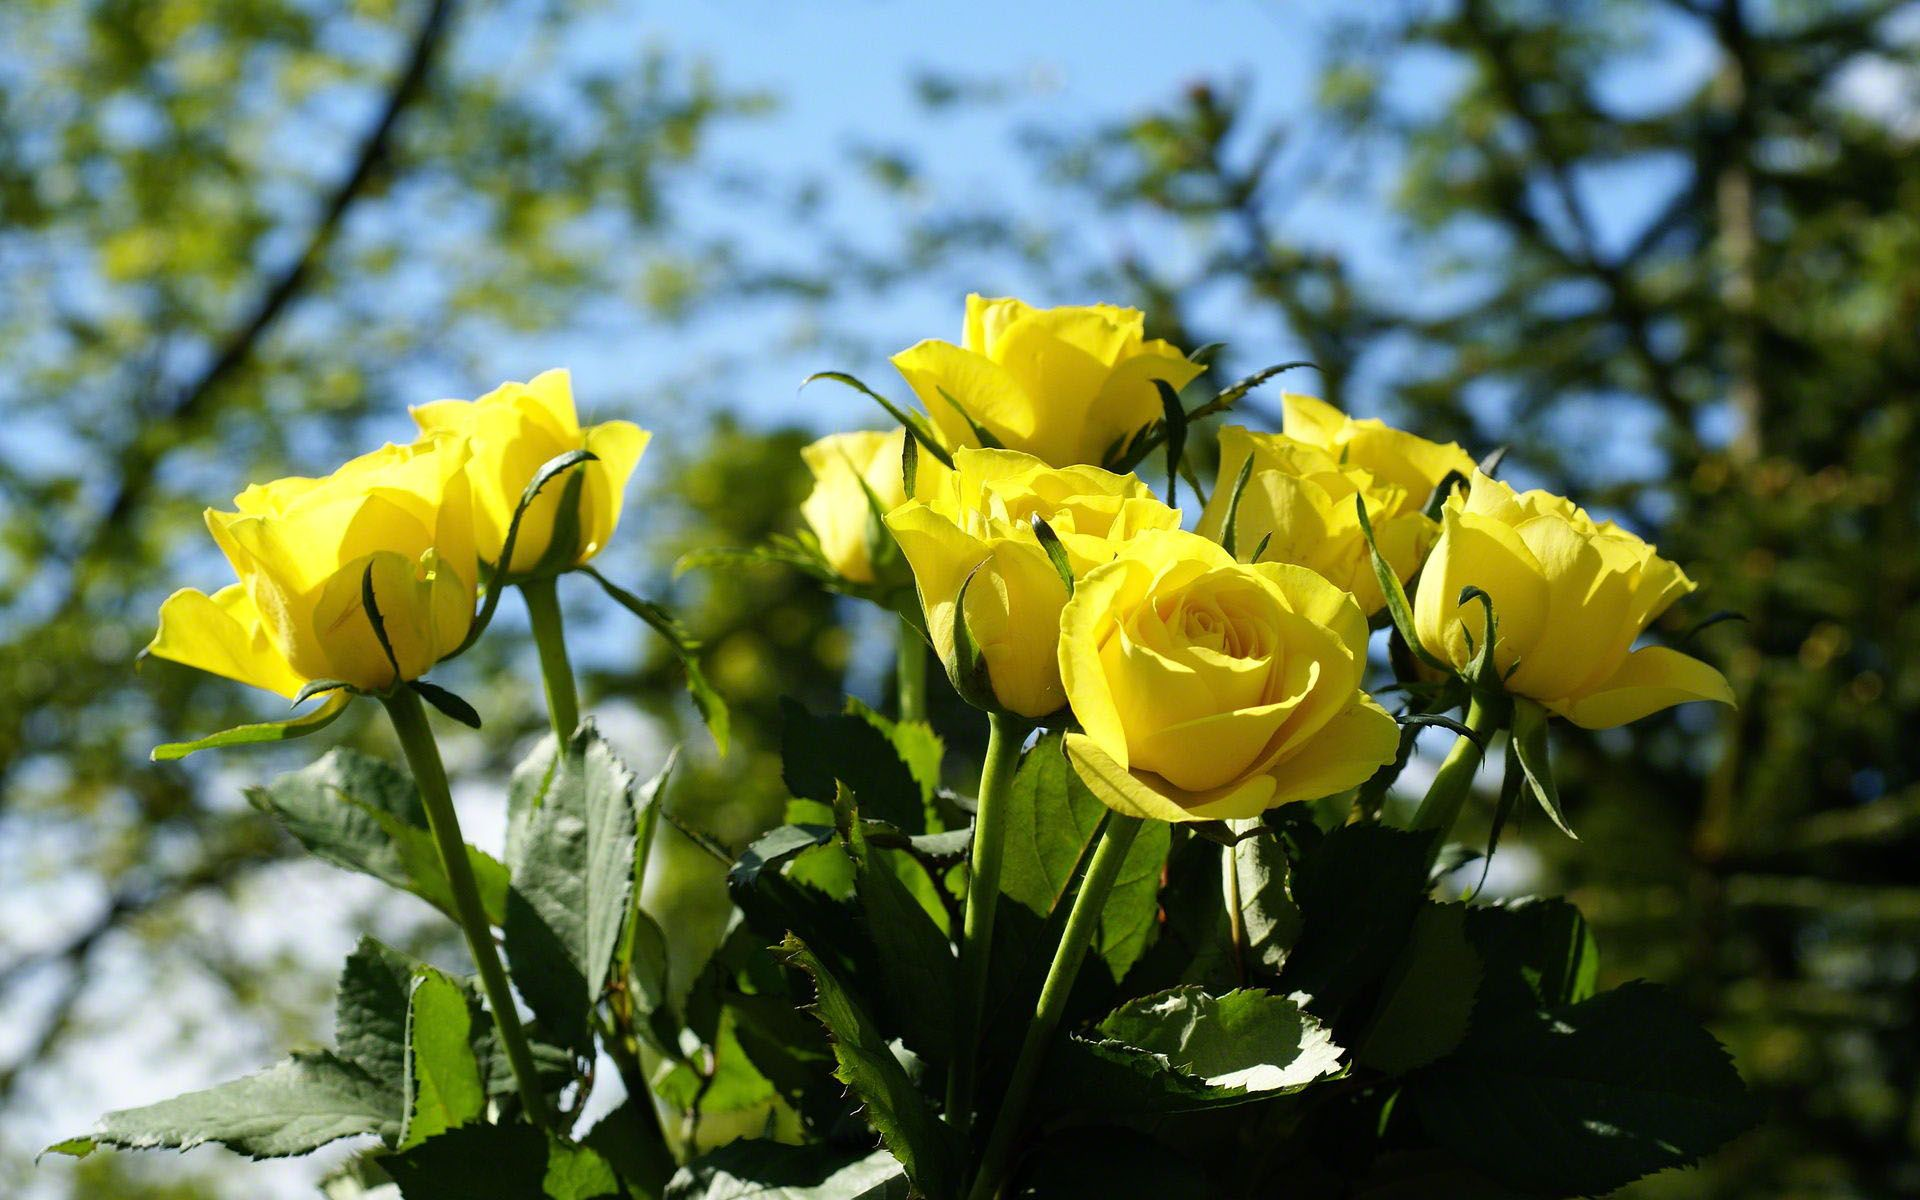 3d Yellow Roses Google Search Rose Flower Wallpaper Yellow Rose Flower Beautiful Flowers Wallpapers